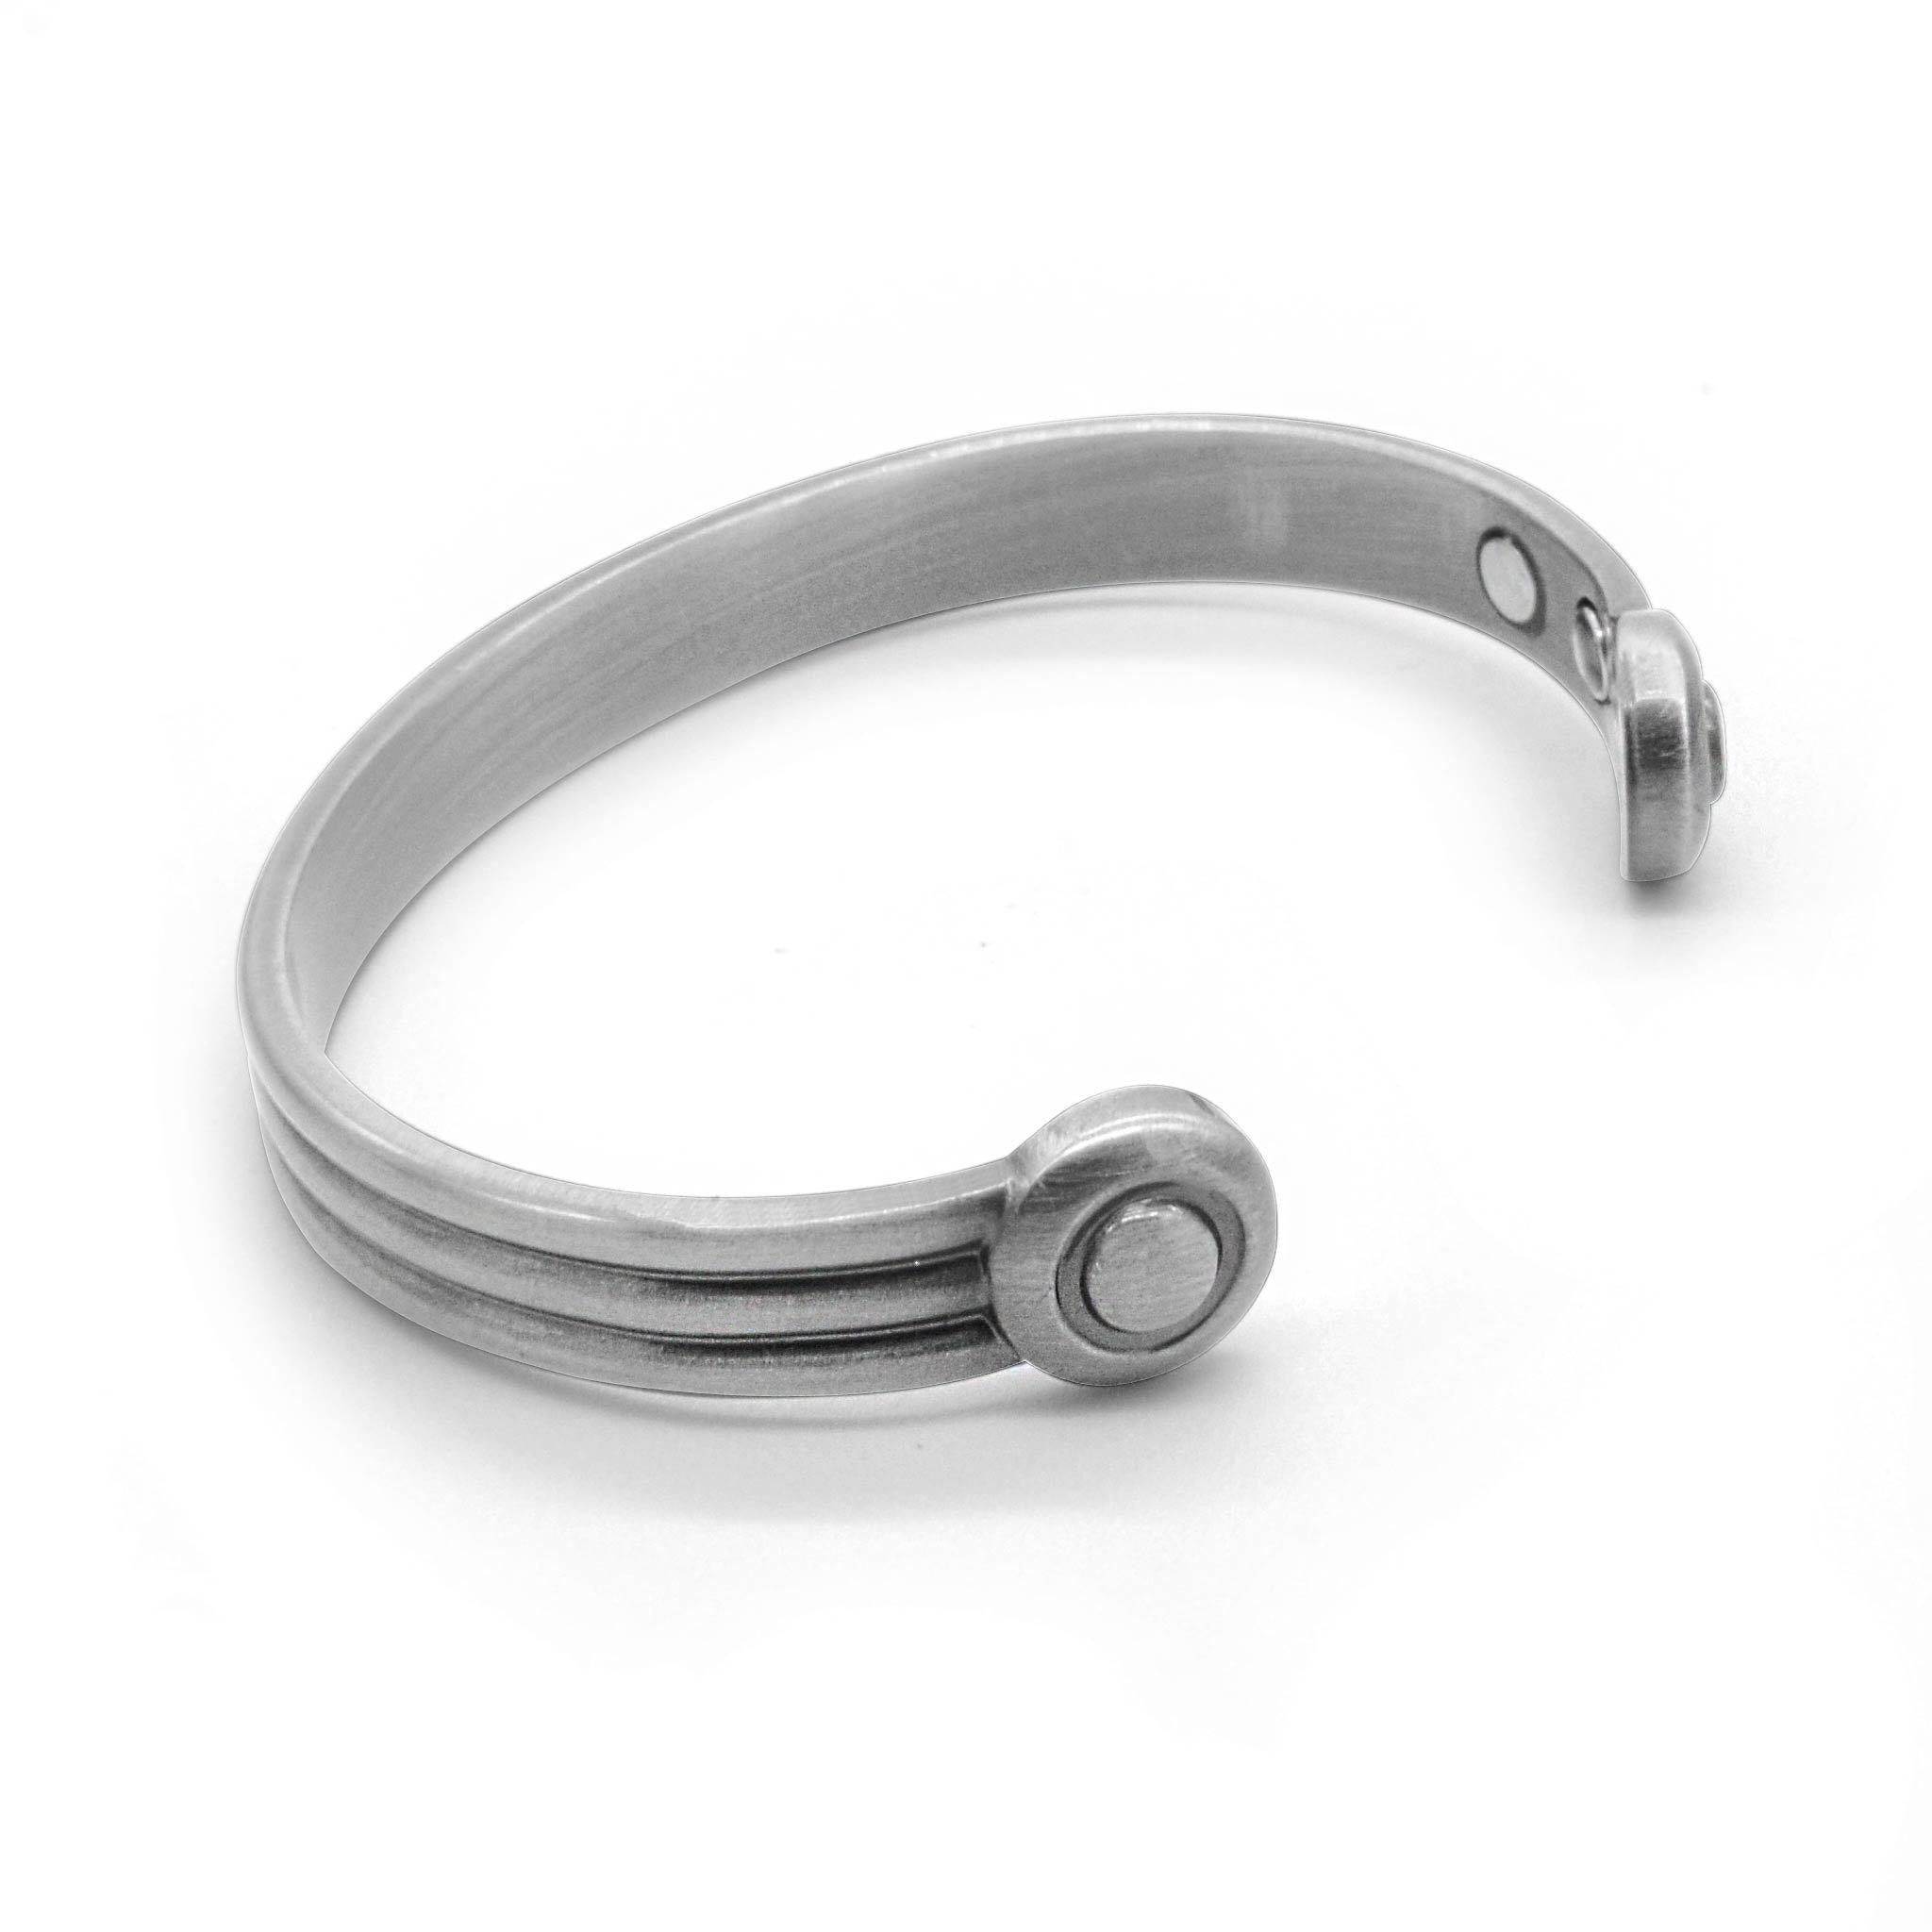 Axle Pewter Torque magnetic bangle-DEMI+CO Jewellery